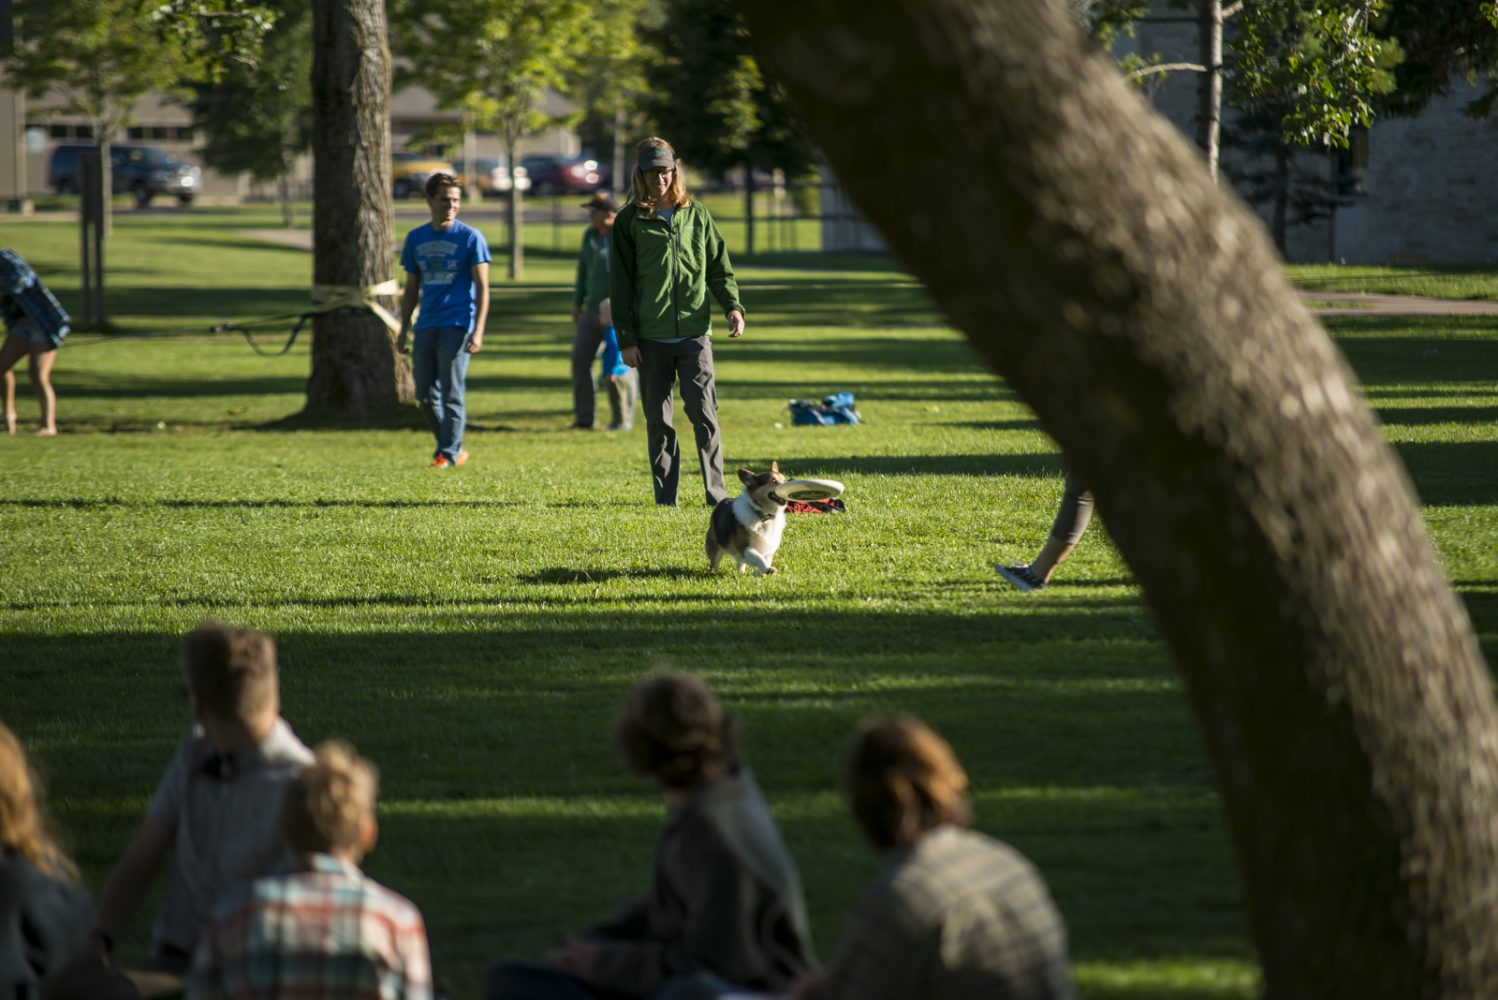 Northland College students play frisbee with dog on campus mall.